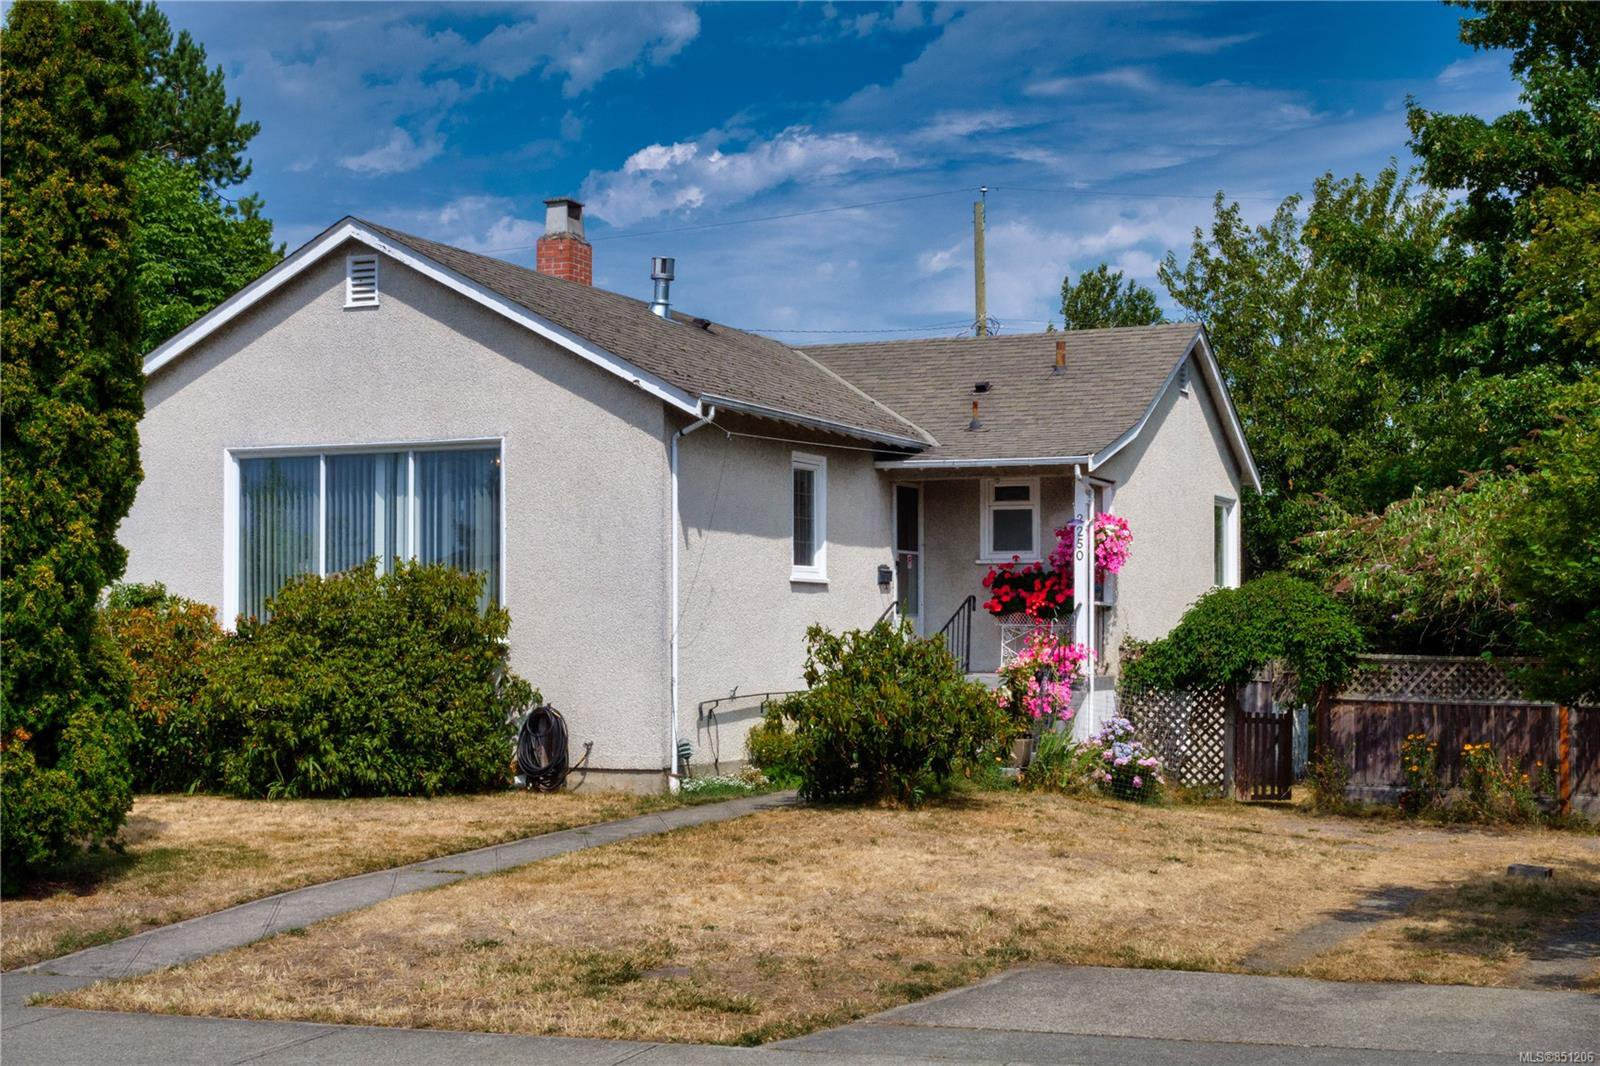 Main Photo: 2250 Woodhouse Rd in : OB Henderson Single Family Detached for sale (Oak Bay)  : MLS®# 851206